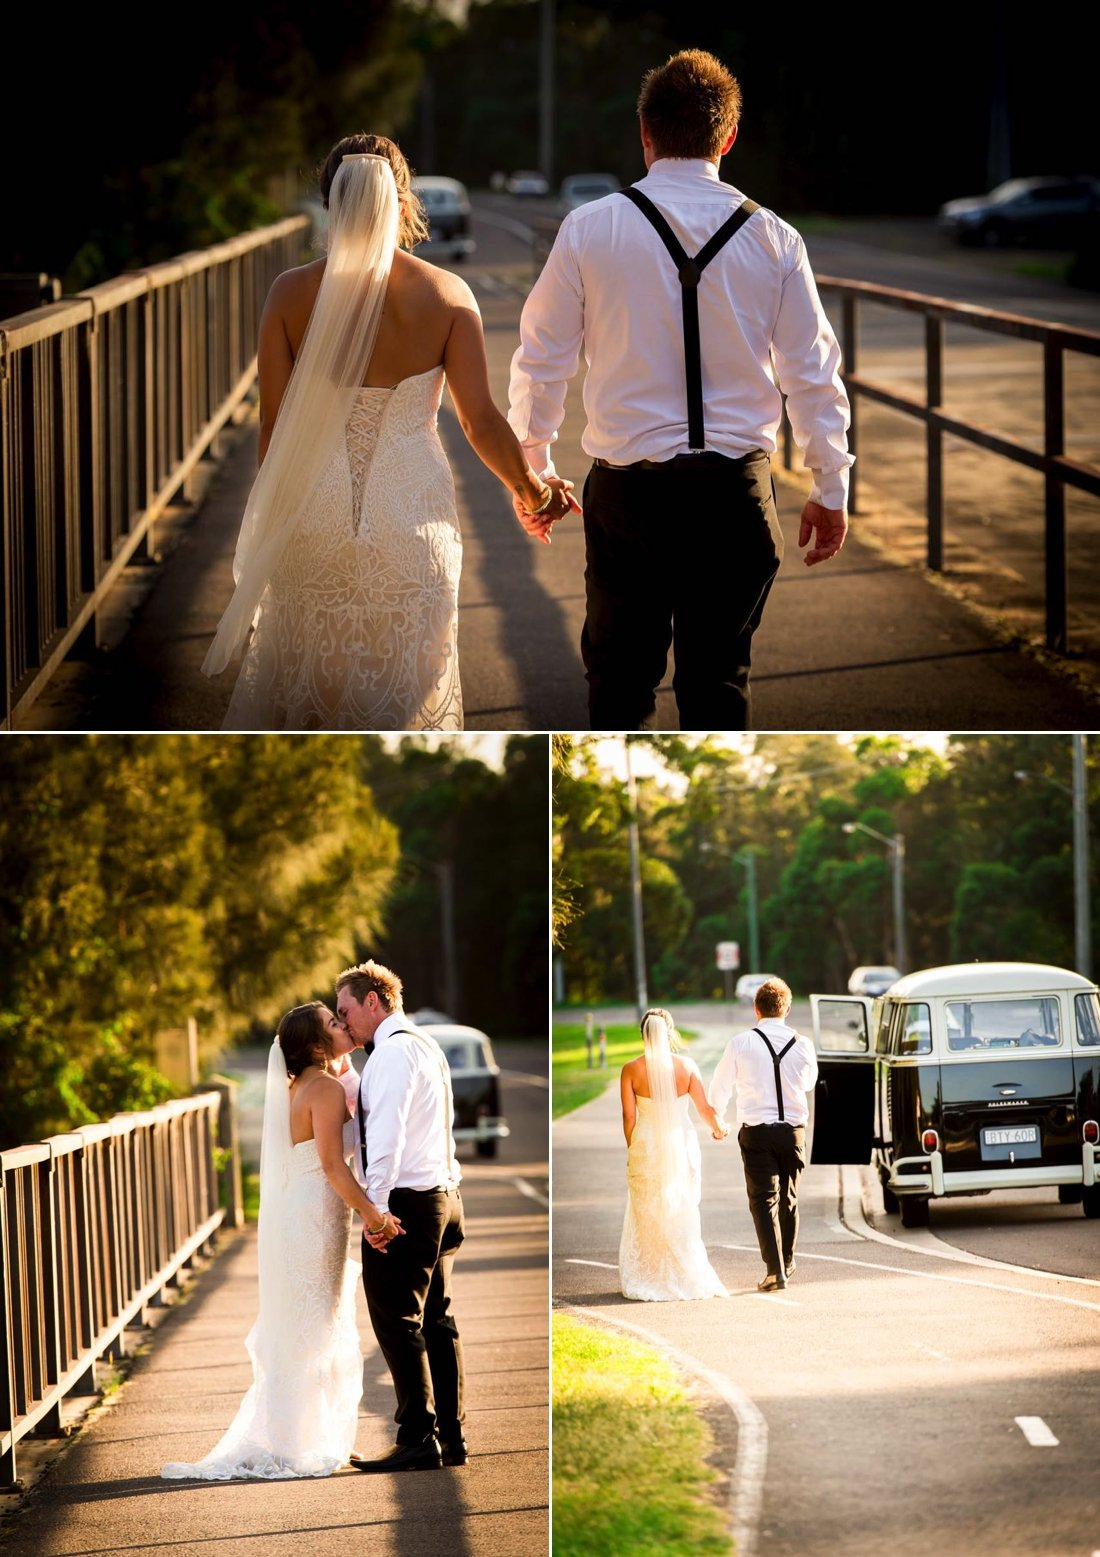 Wedding photography shoot in Wollongong